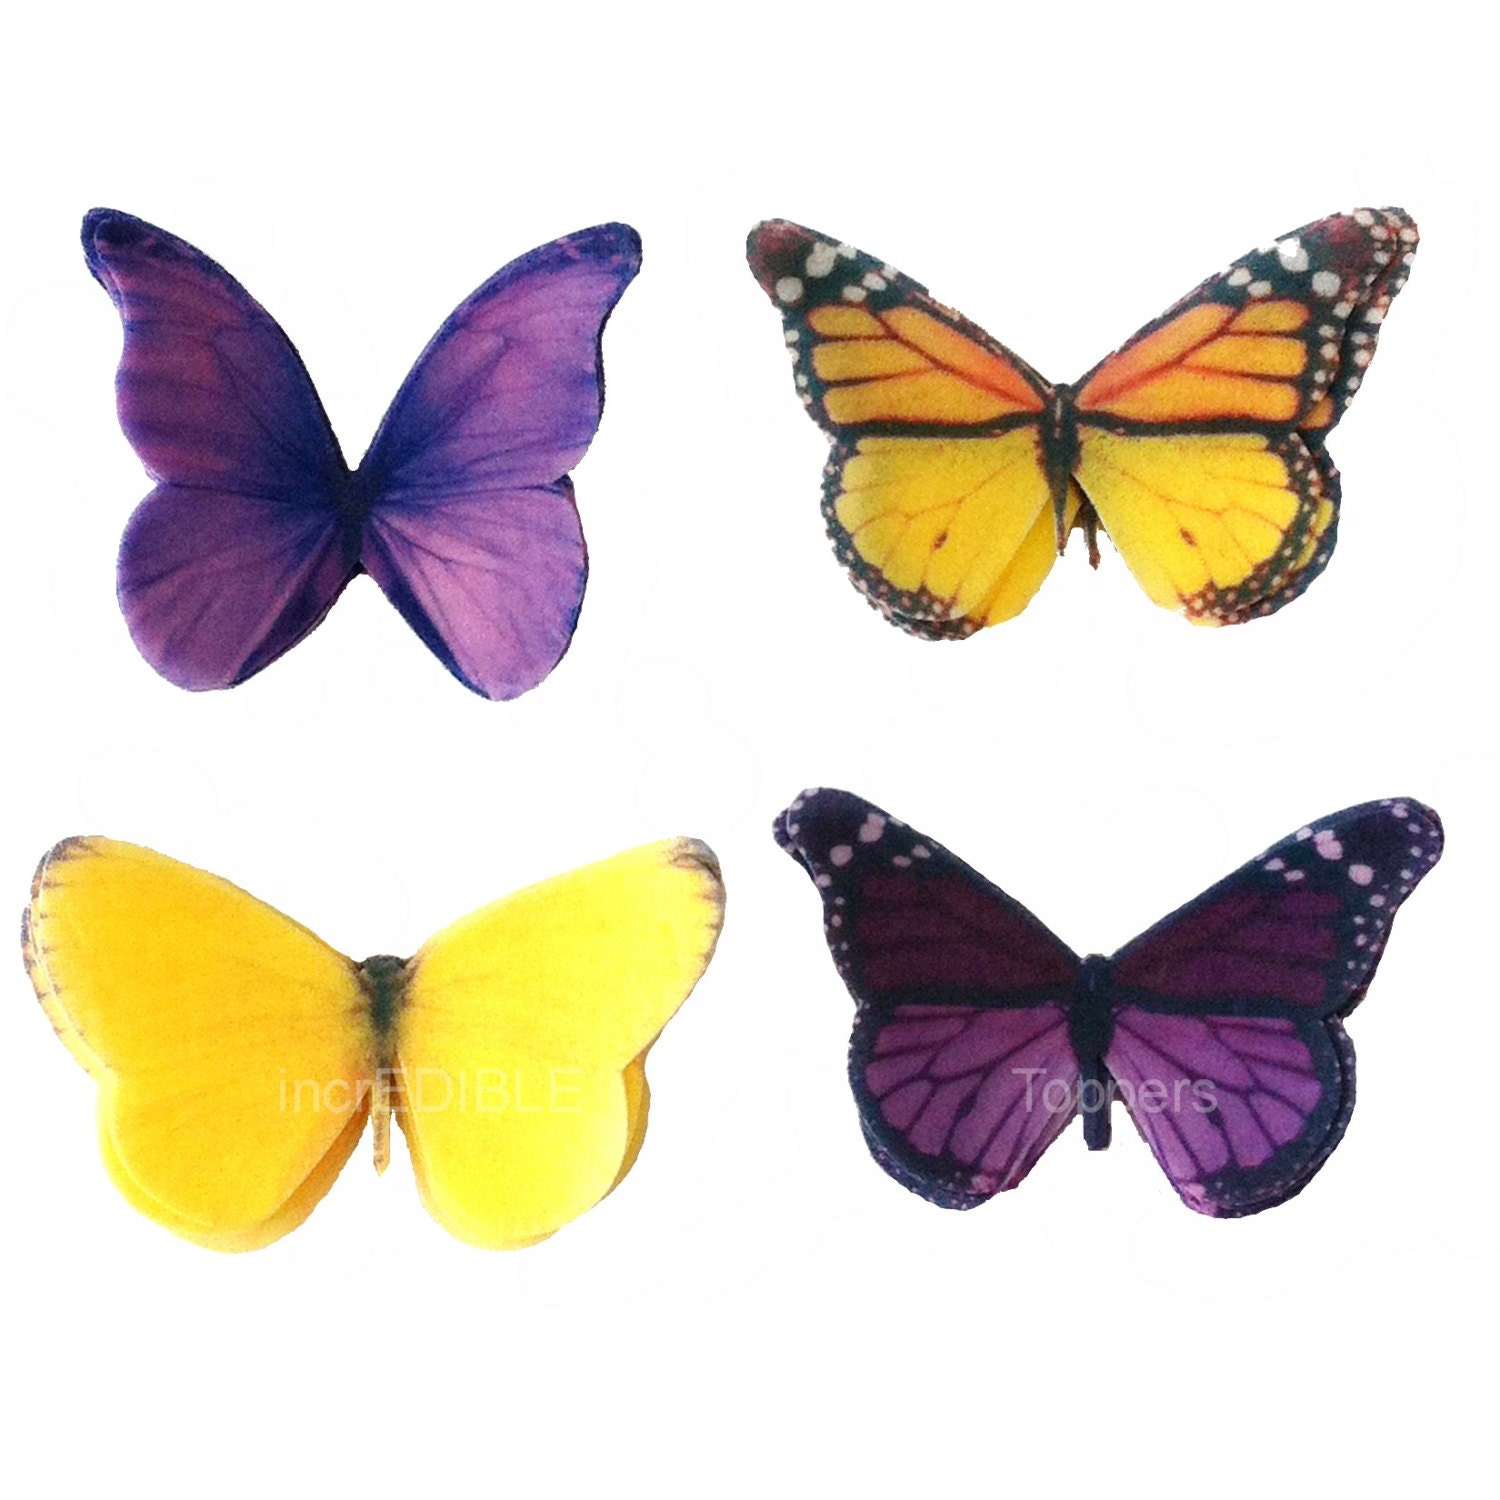 Cupcake Toppers Edible Butterfly Cake Decorations in Purple